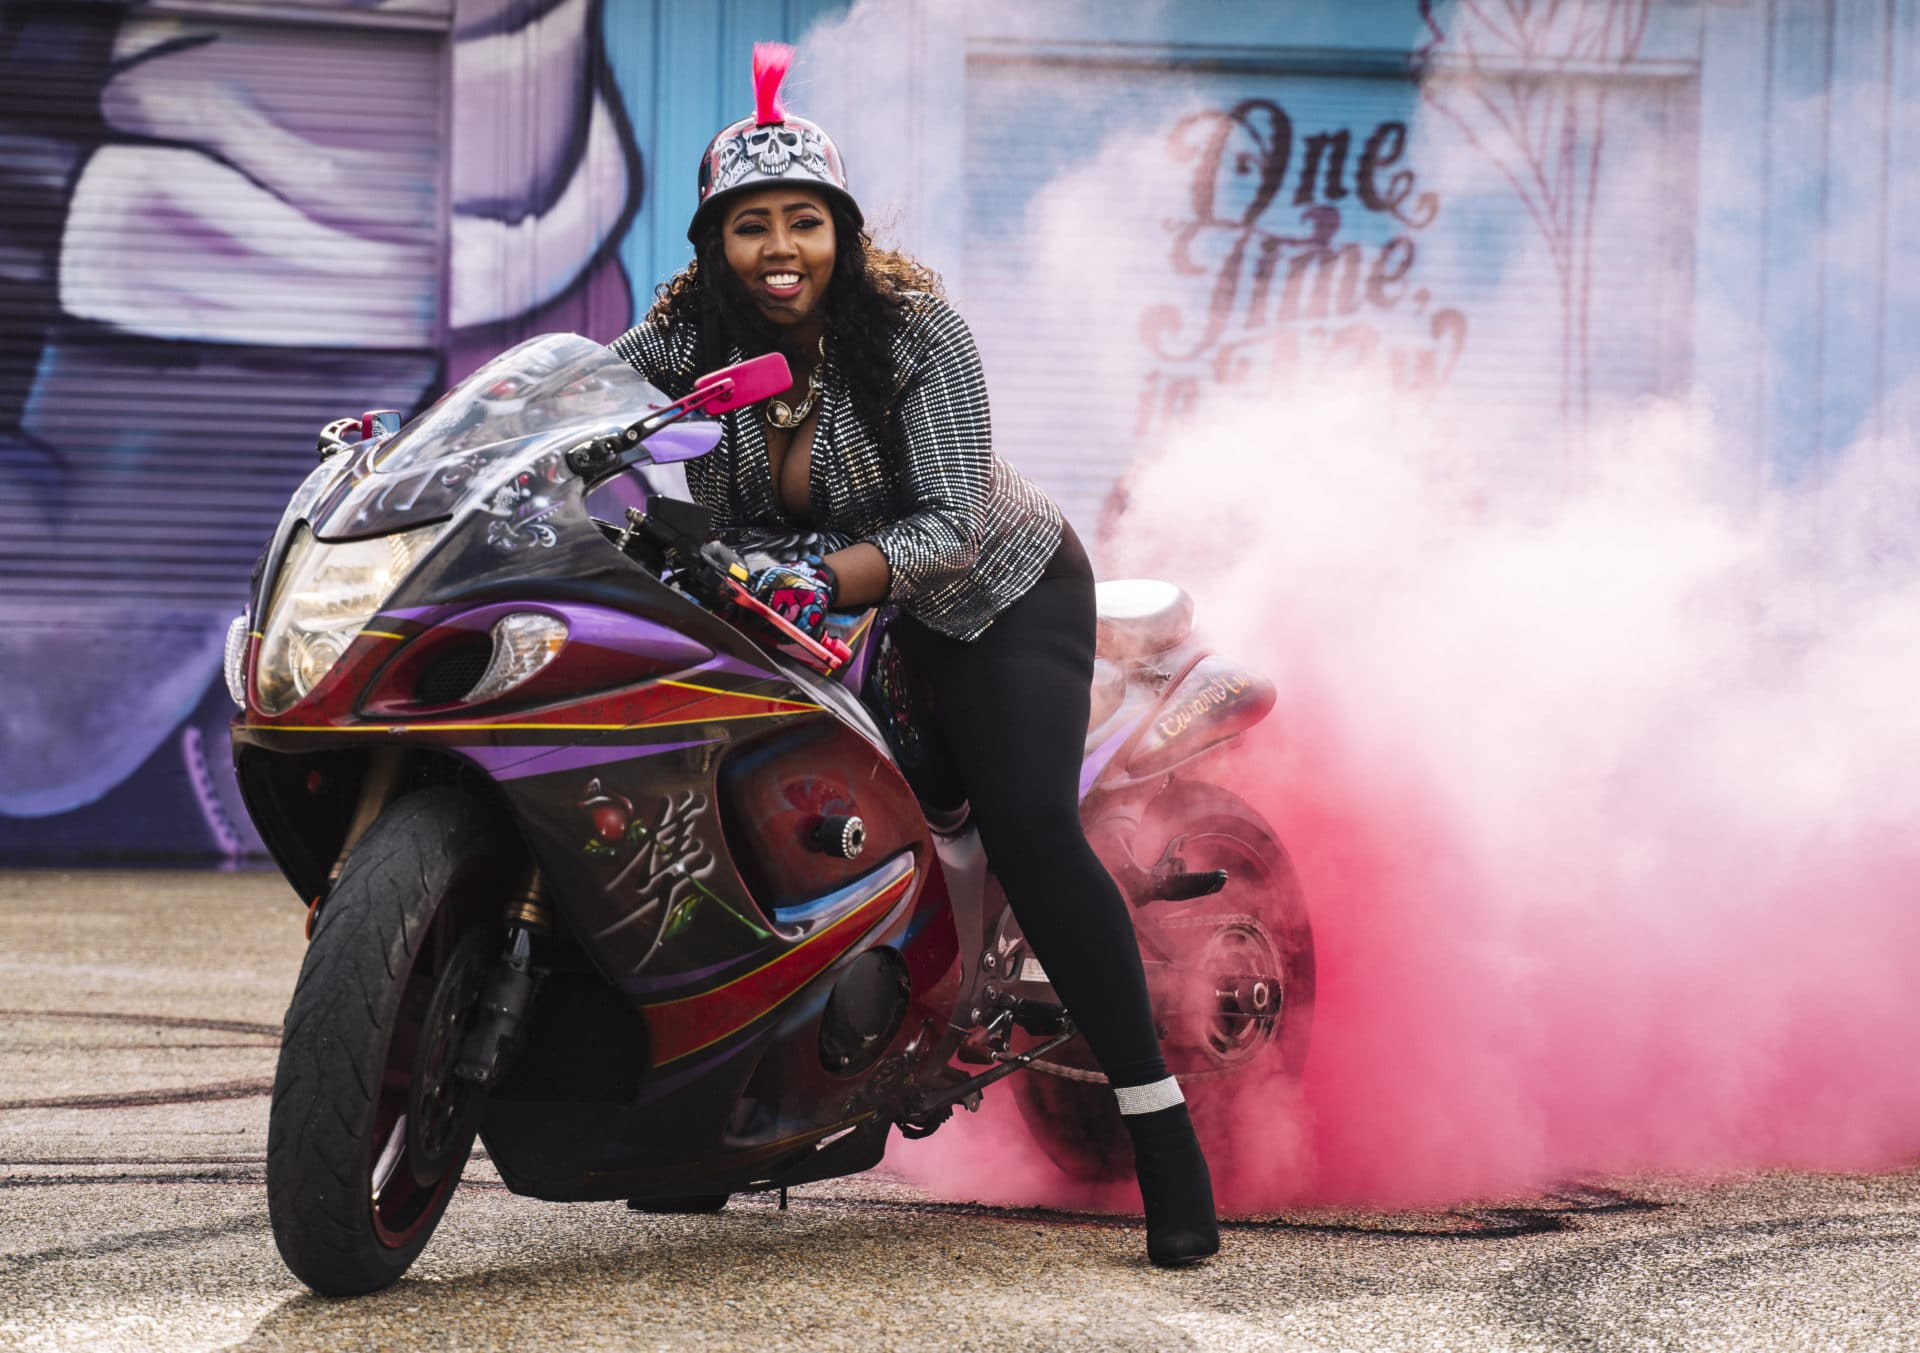 Meet The Caramel Curves: New Orleans' All-Female Biker Club Is Full Of Black Girl Magic